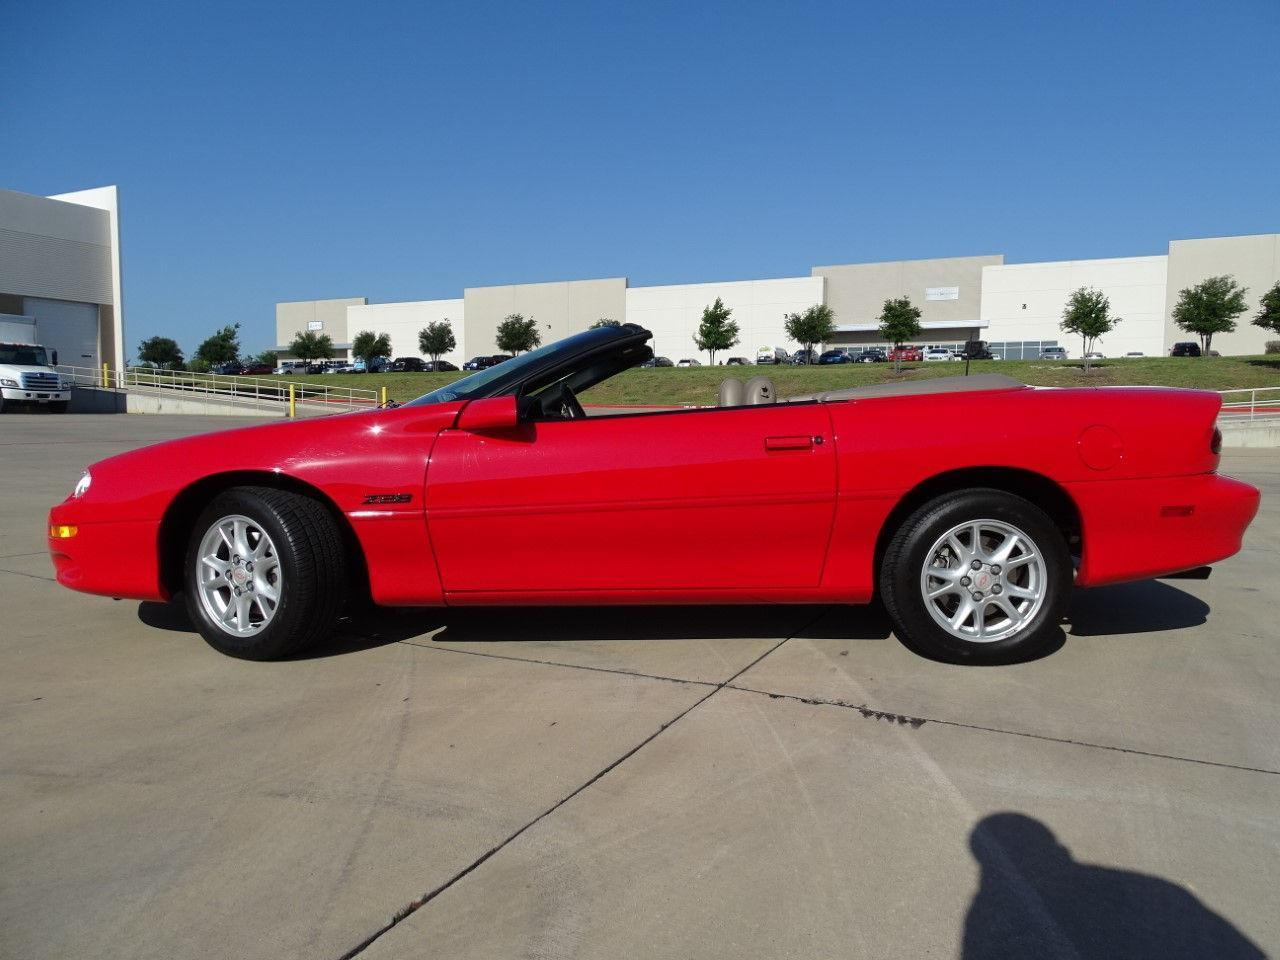 2002 Chevrolet Camaro (CC-1351861) for sale in O'Fallon, Illinois